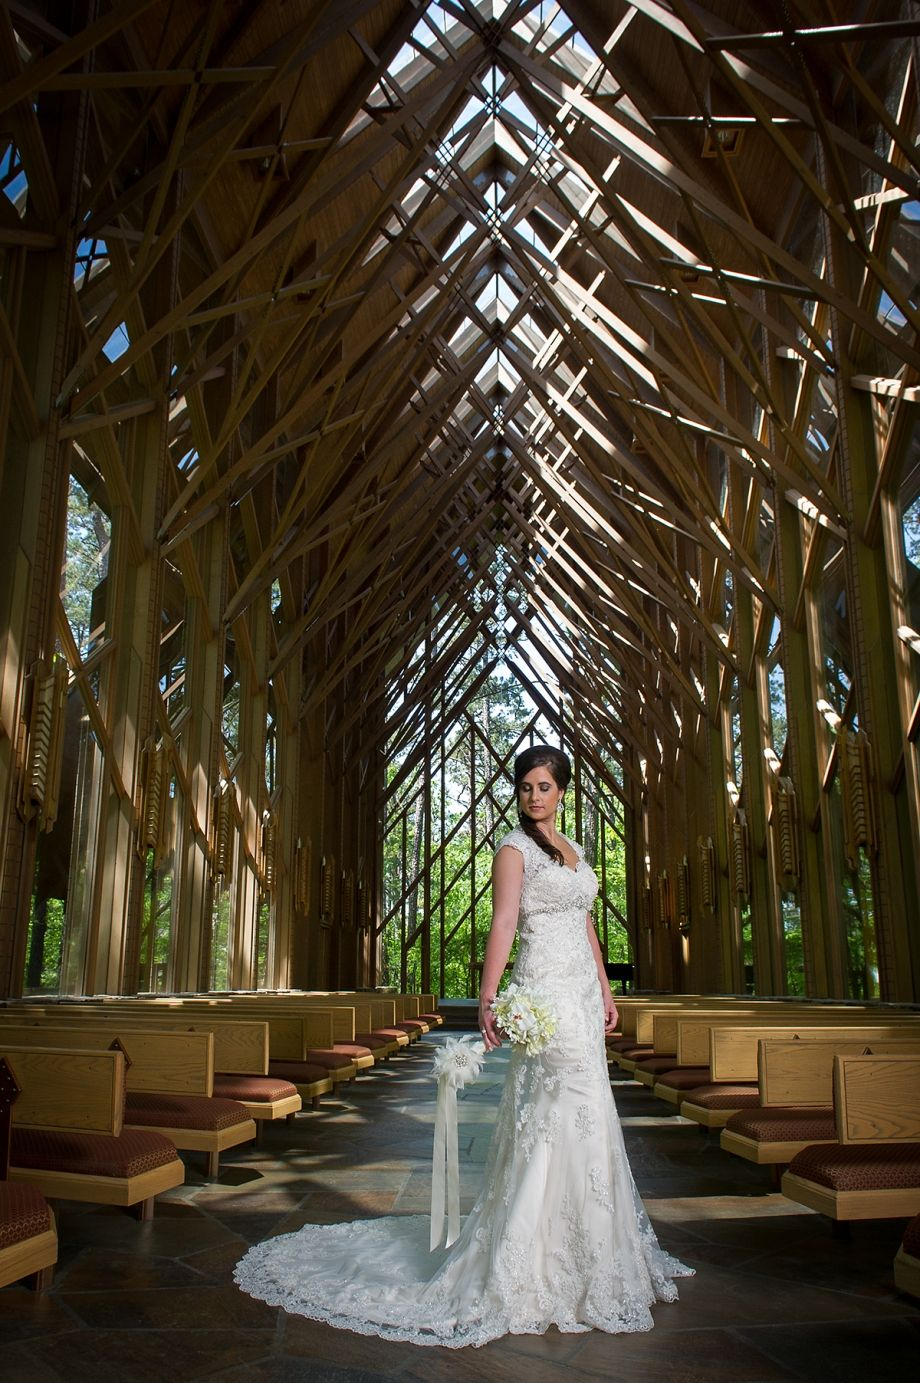 2017 Bridal Garvan Gardens Hot Springs Ar At The Anthony Chapel Wedding Jason Crader Photography Flowers Church